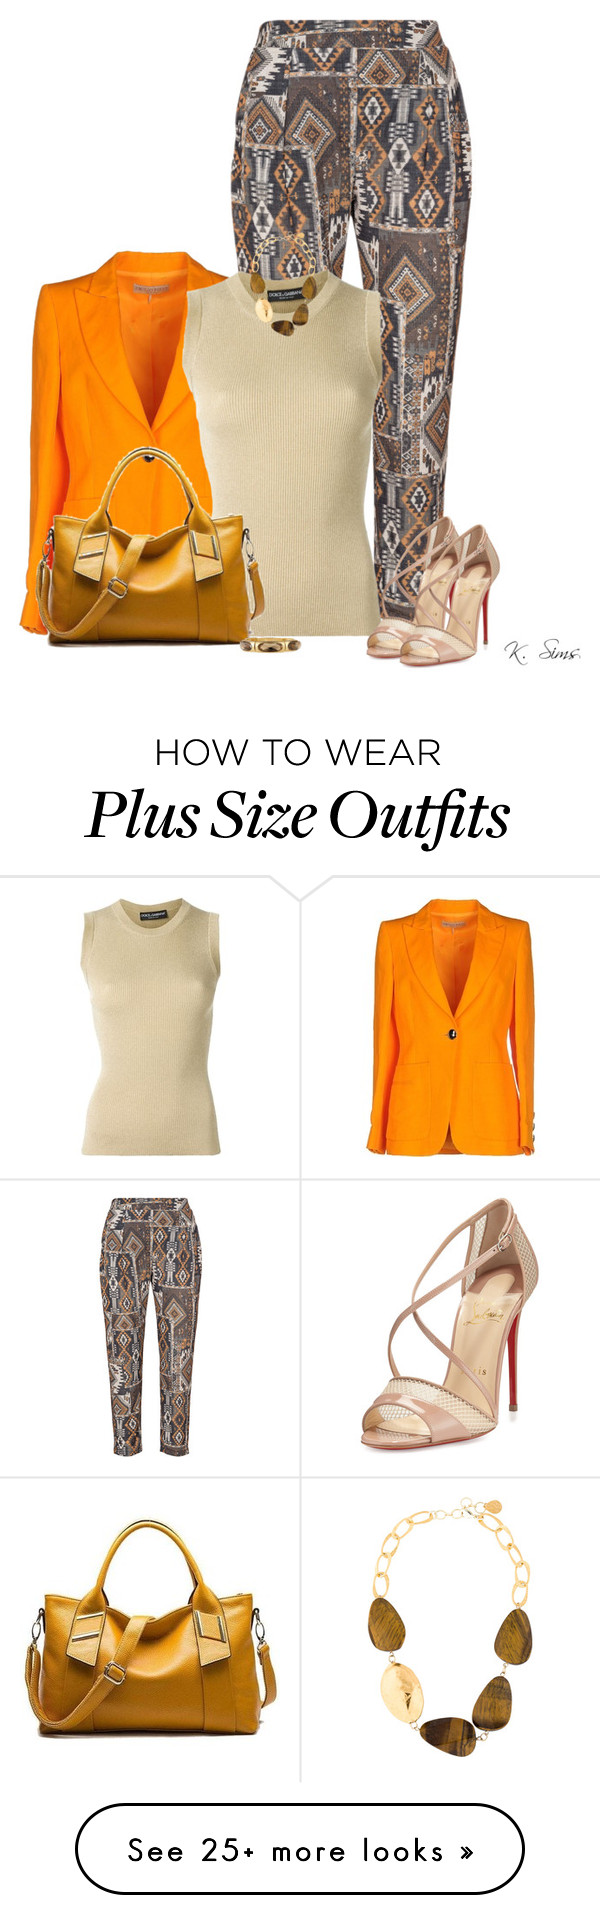 """""""I like the pants!"""" by ksims-1 on Polyvore featuring Elvi, Emilio Pucci, Dolce&Gabbana, Christian Louboutin, Emily & Ashley and Devon Leigh"""